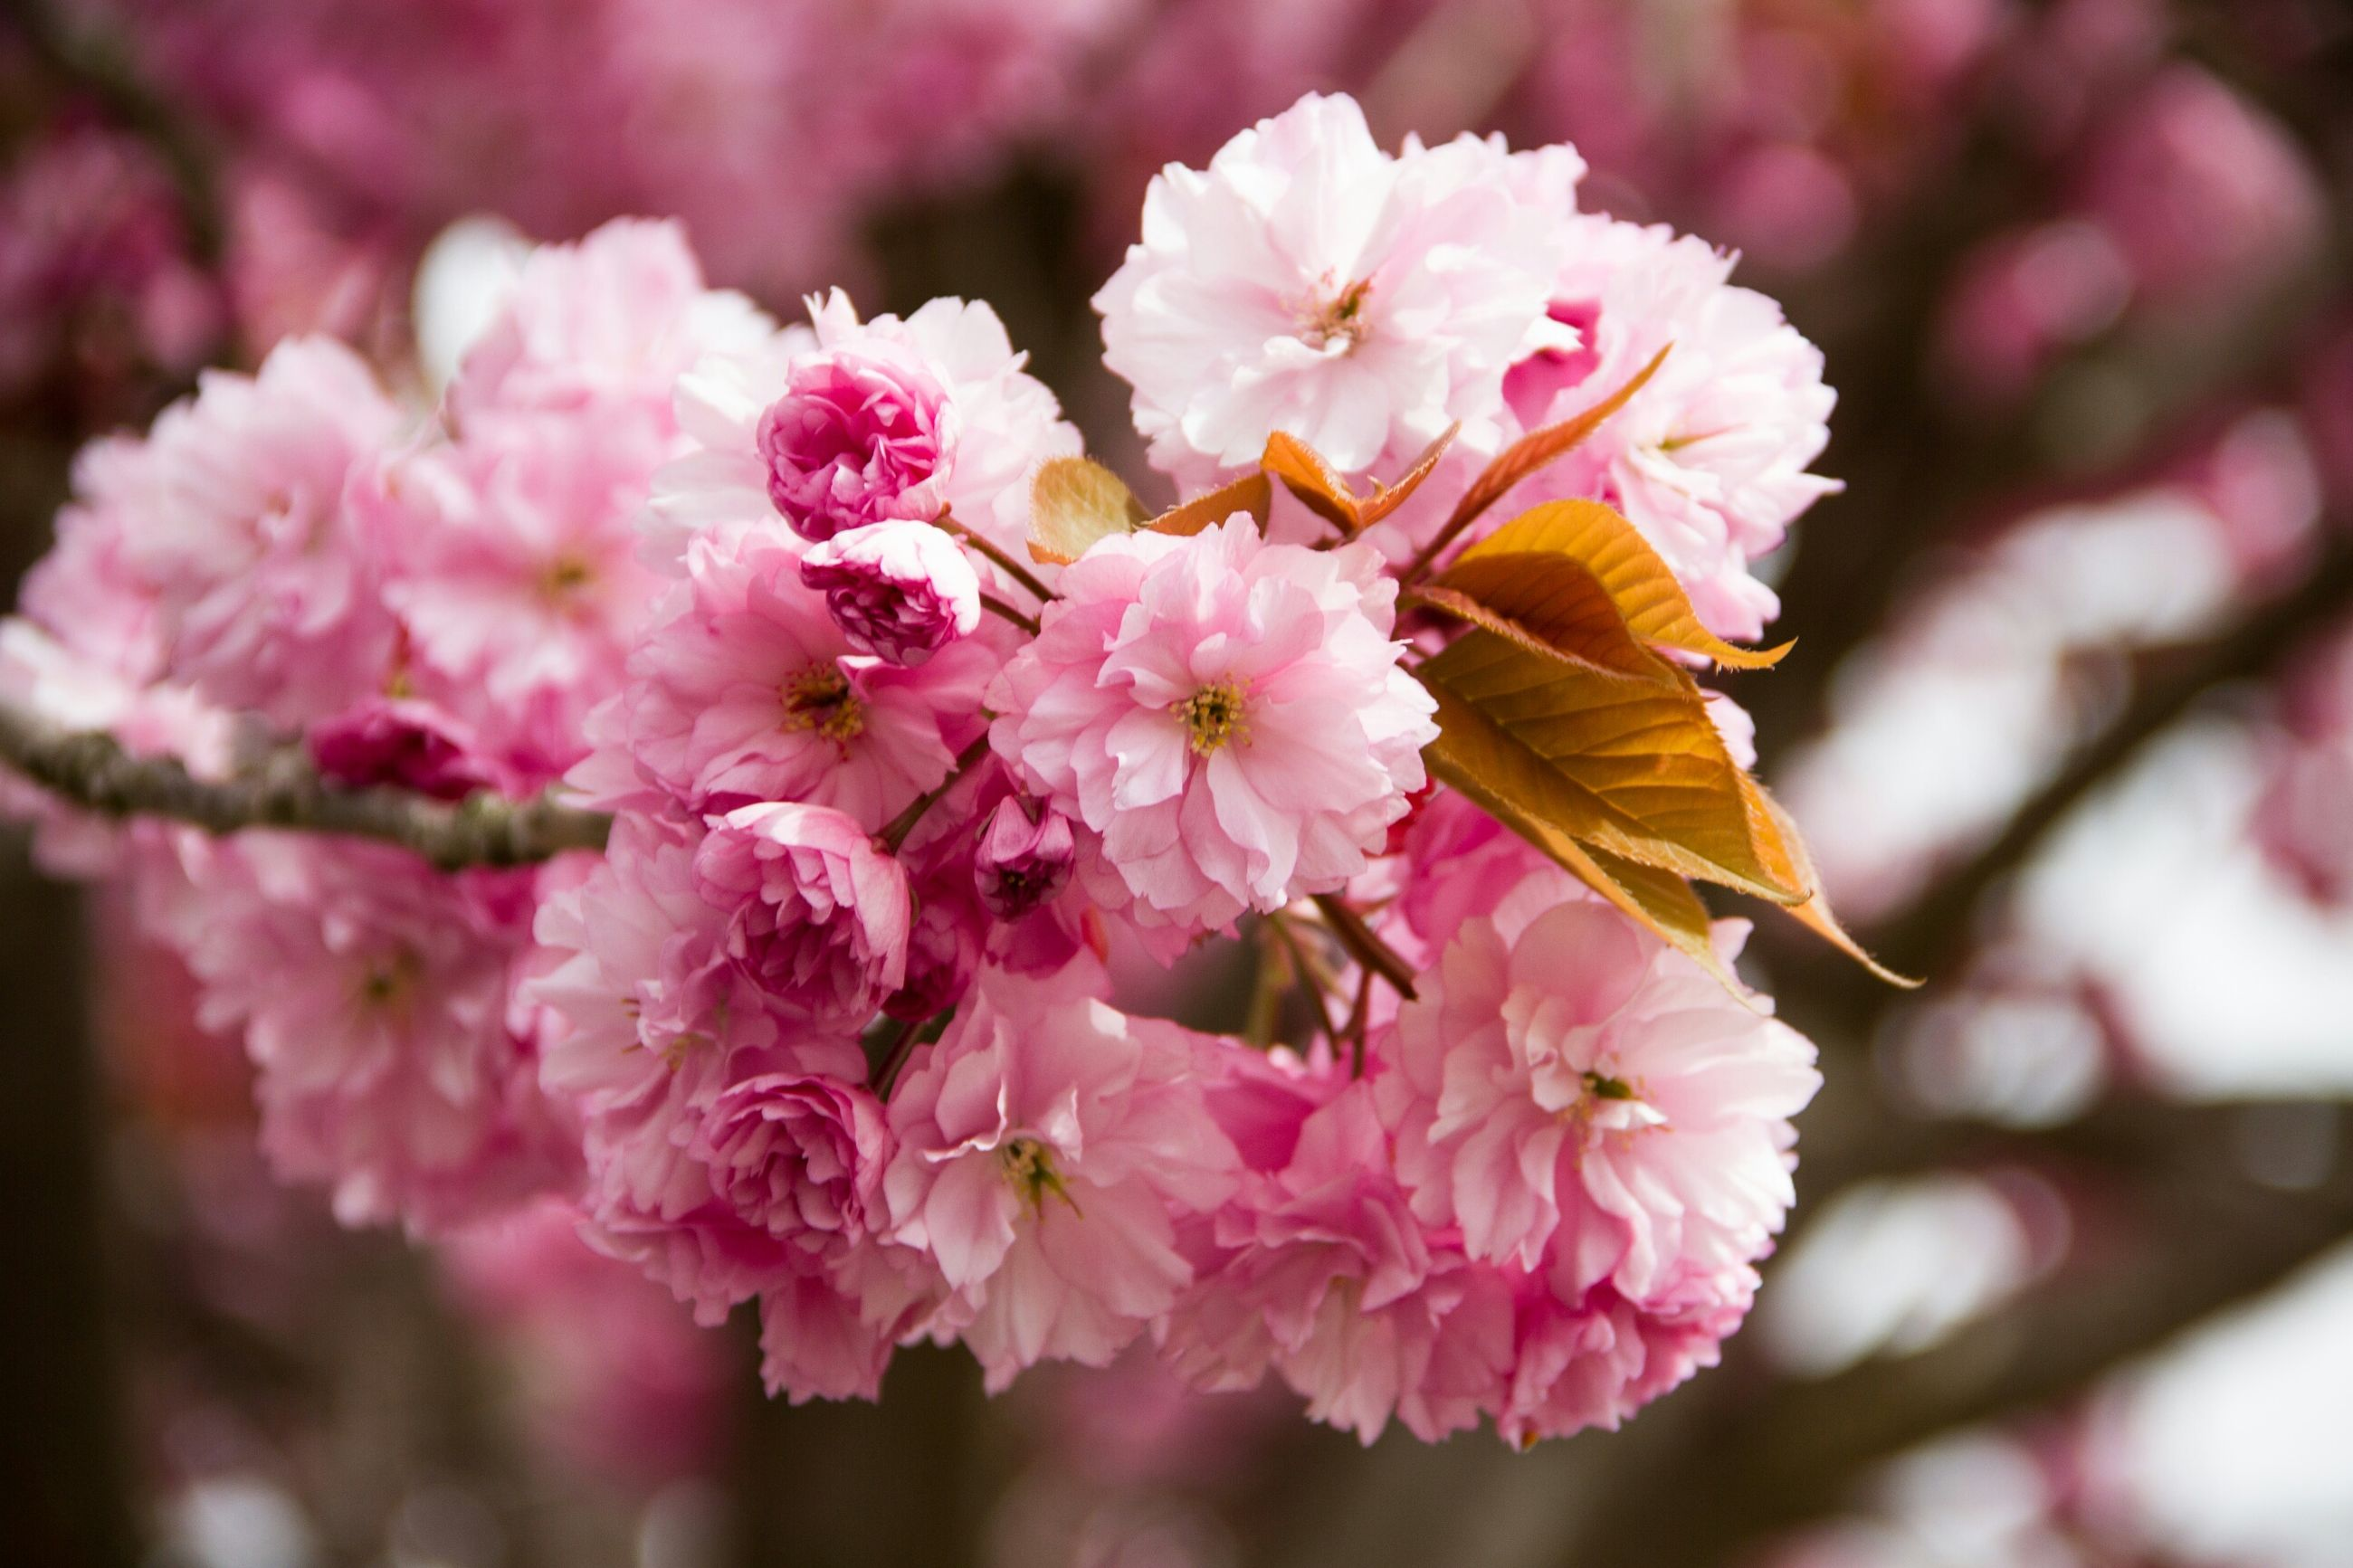 flower, freshness, fragility, pink color, petal, beauty in nature, growth, focus on foreground, close-up, cherry blossom, nature, branch, blossom, flower head, blooming, cherry tree, in bloom, tree, springtime, twig